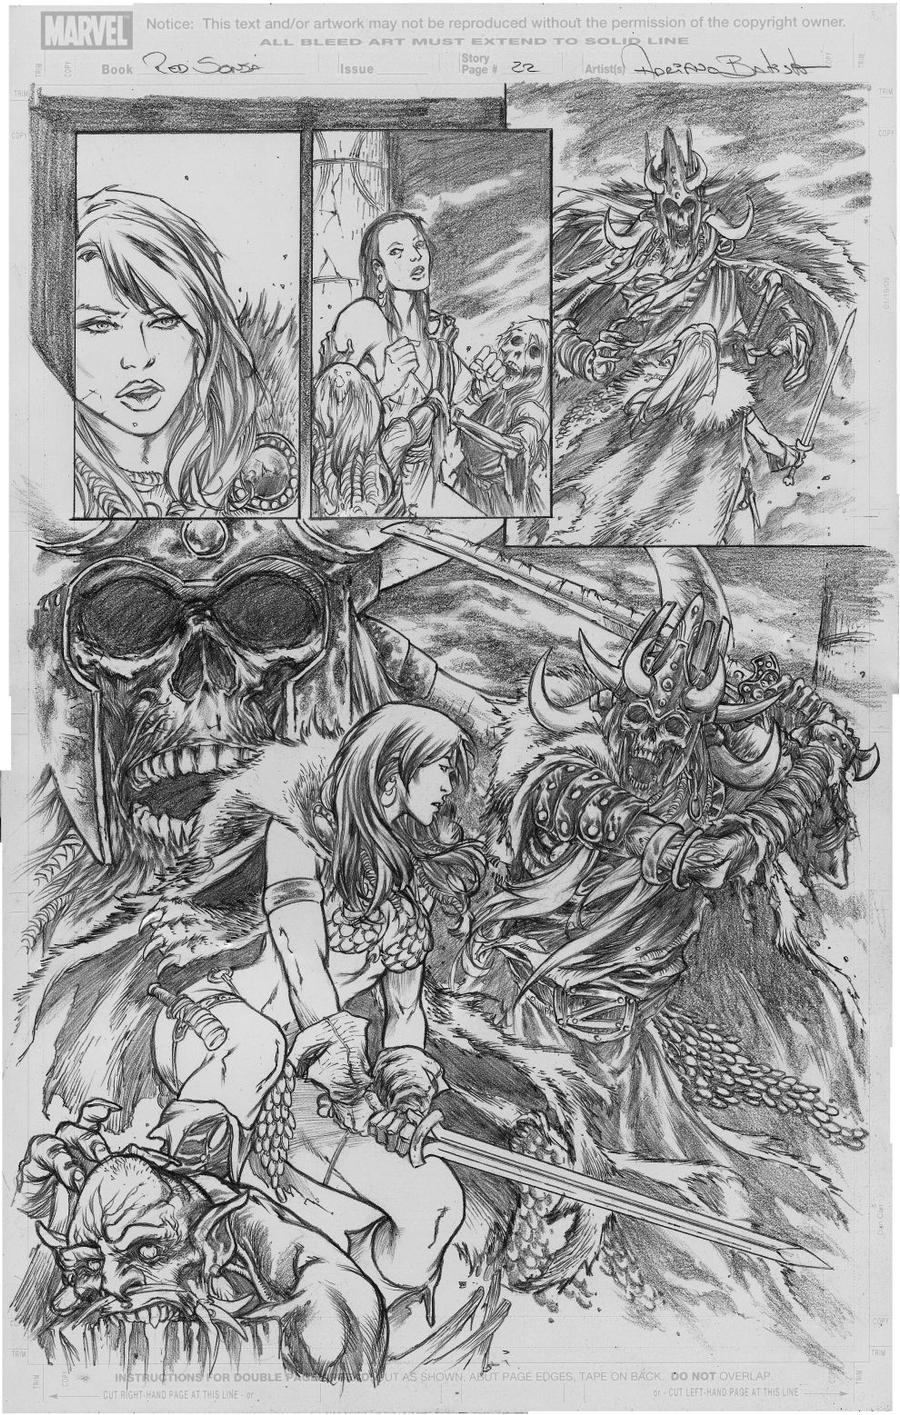 Red Sonja pg 22 annual 3